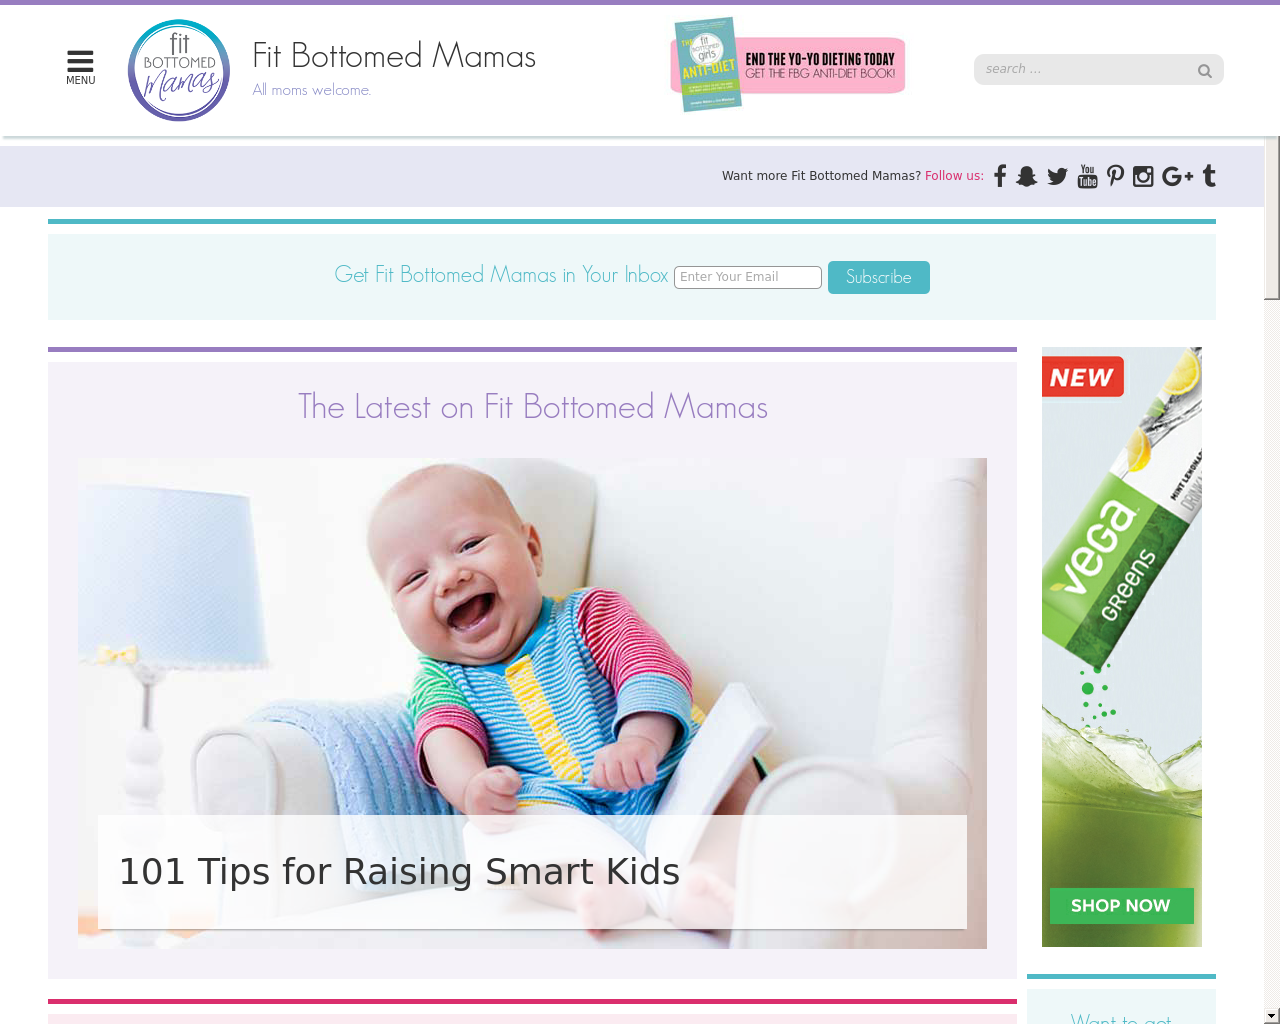 fit-BOTTOMED-mamas-Advertising-Reviews-Pricing